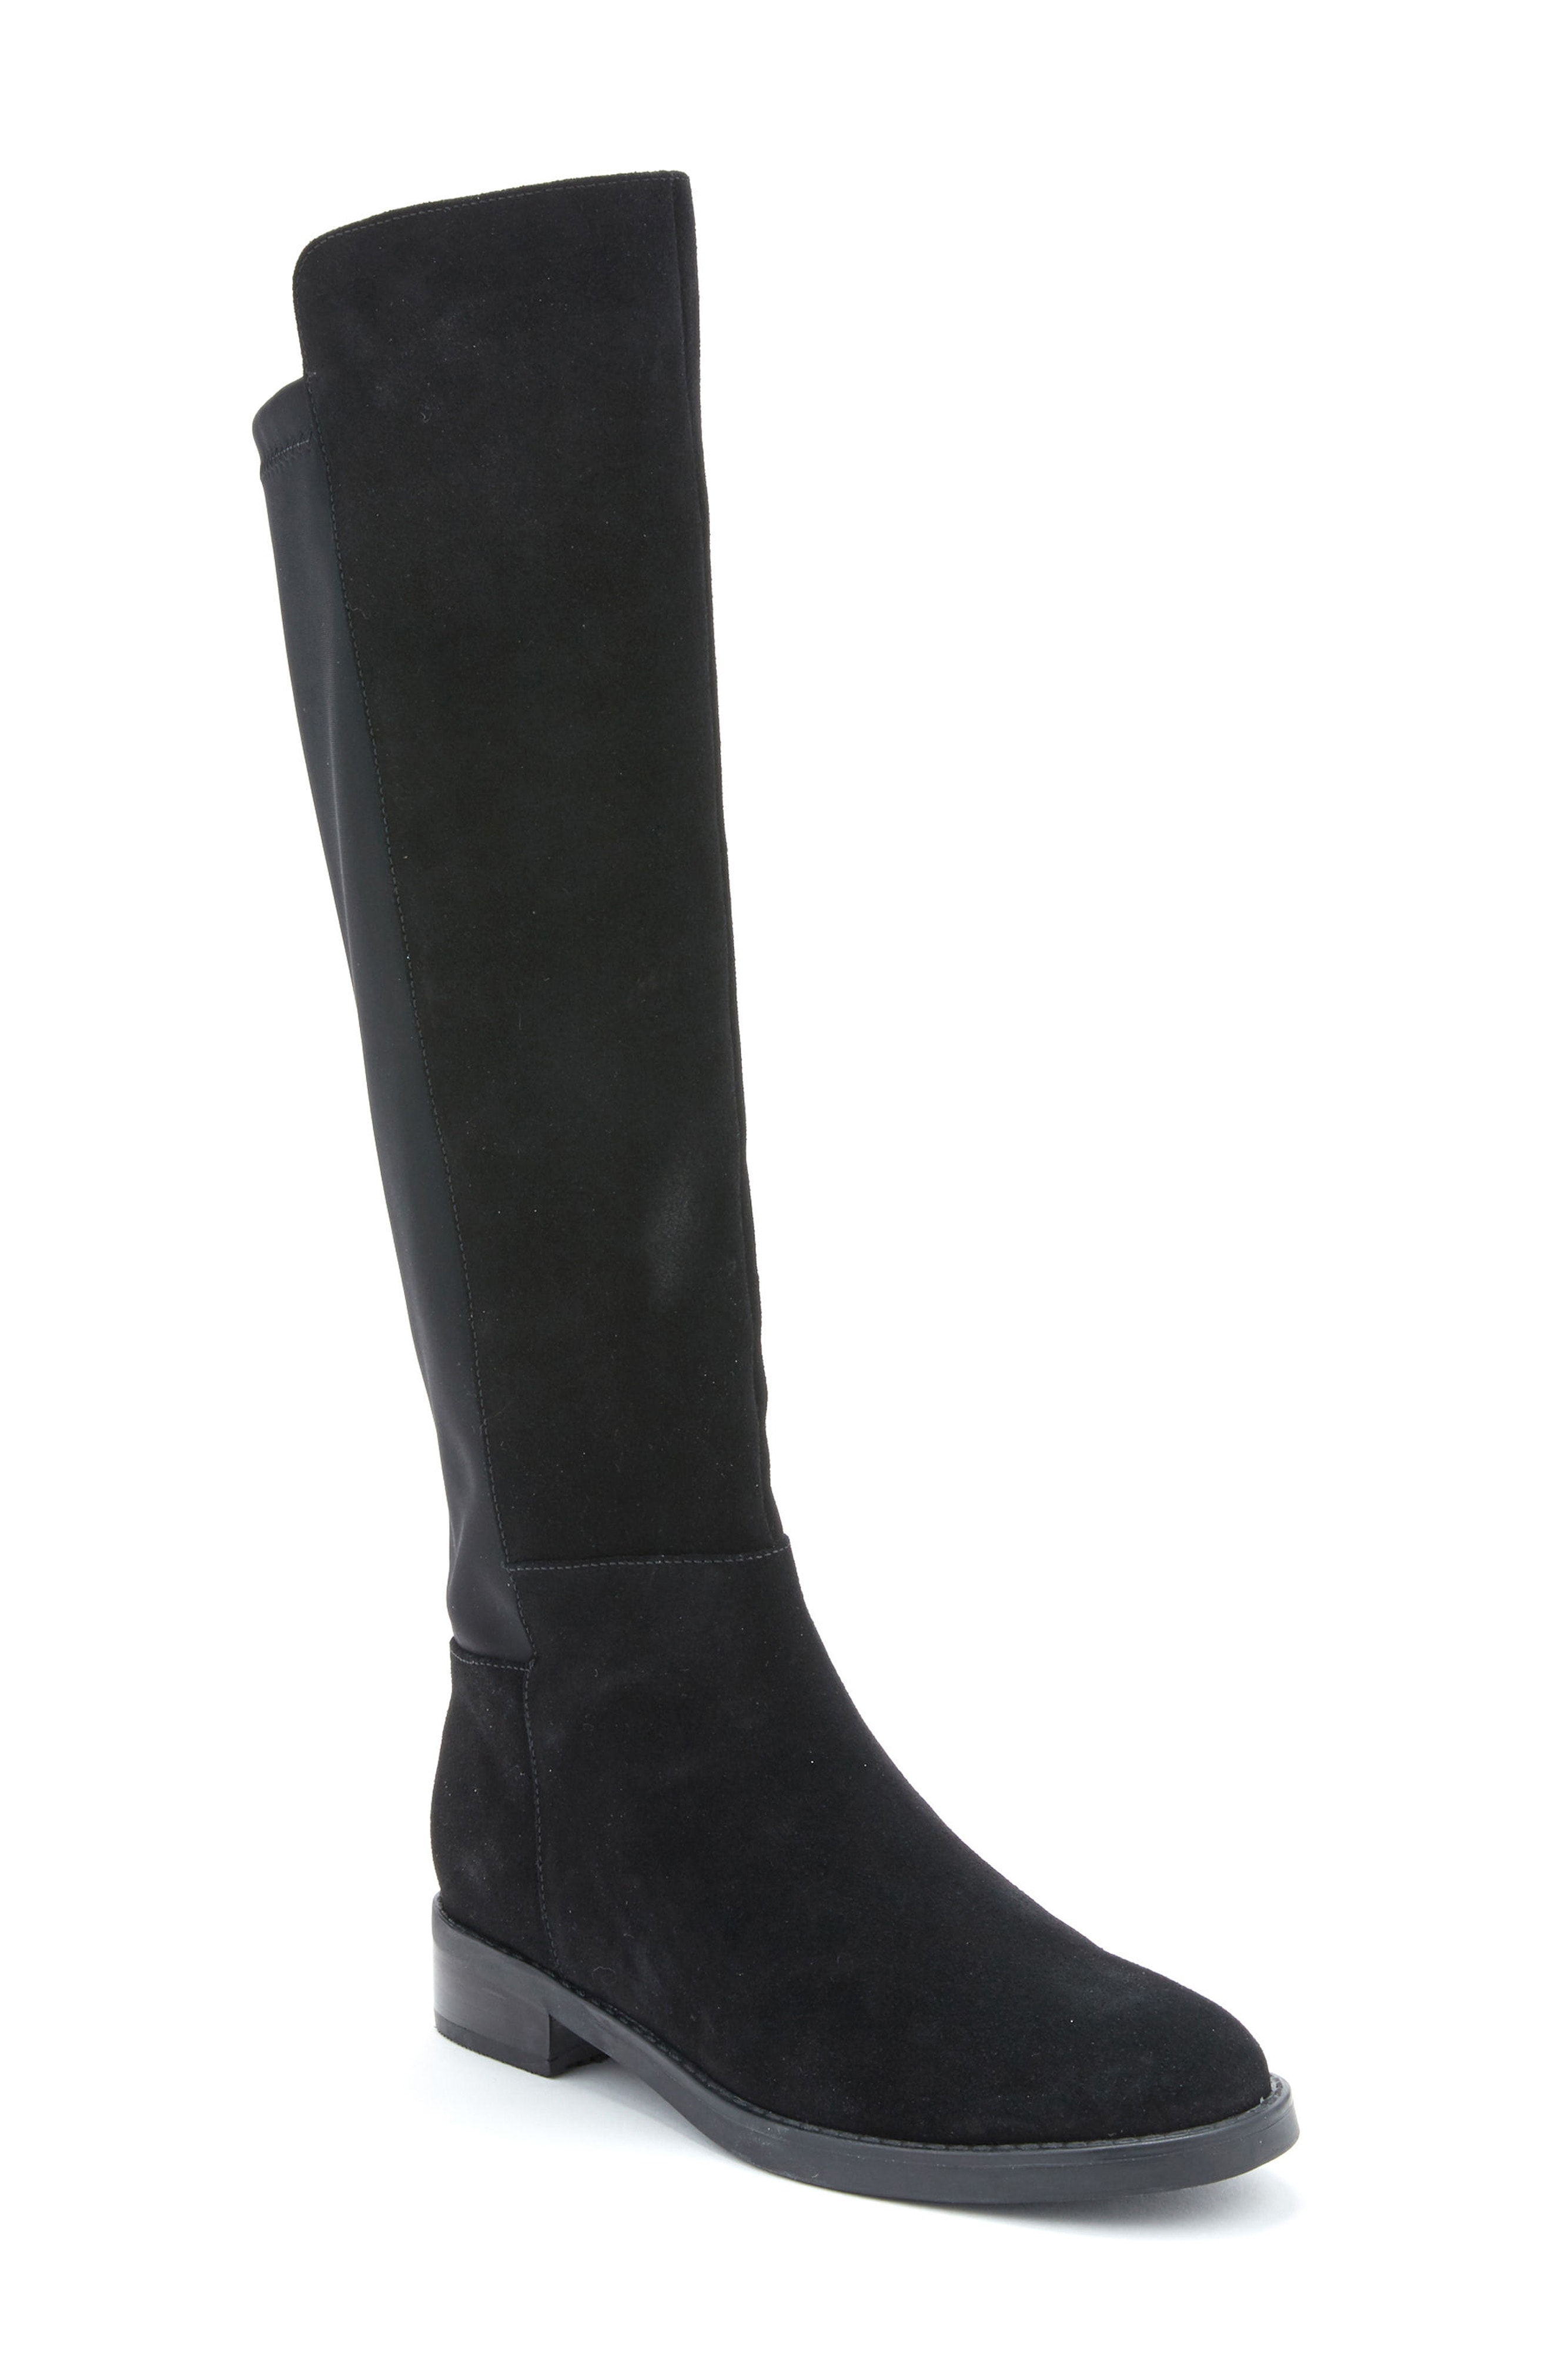 Black knee high boots: Rock this Fall/winter trend